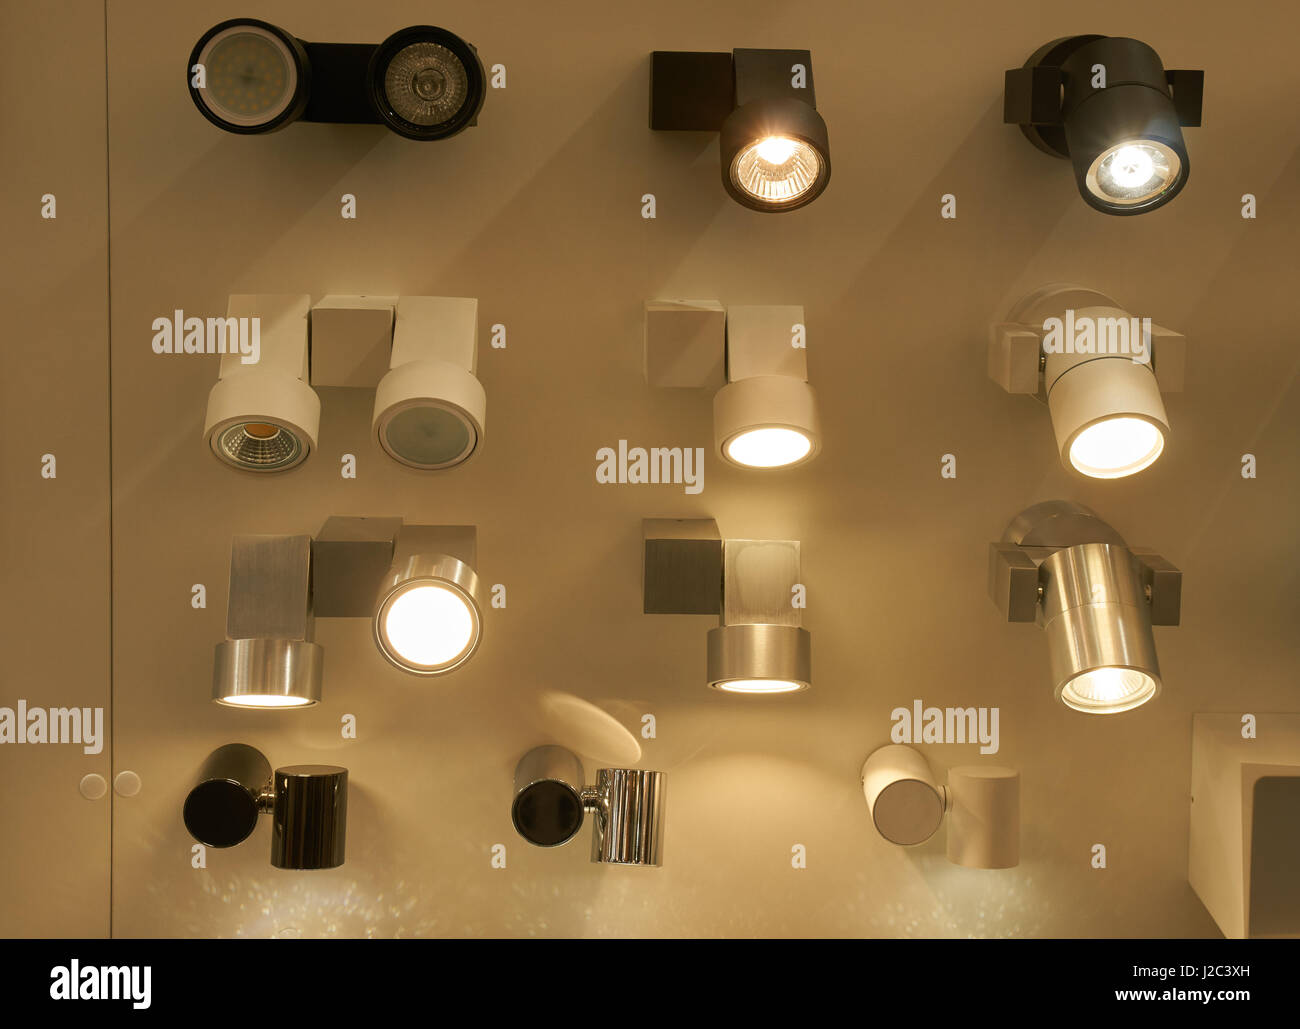 Wall Mounted Electric Lights : Wall Mount Light Stock Photos & Wall Mount Light Stock Images - Alamy